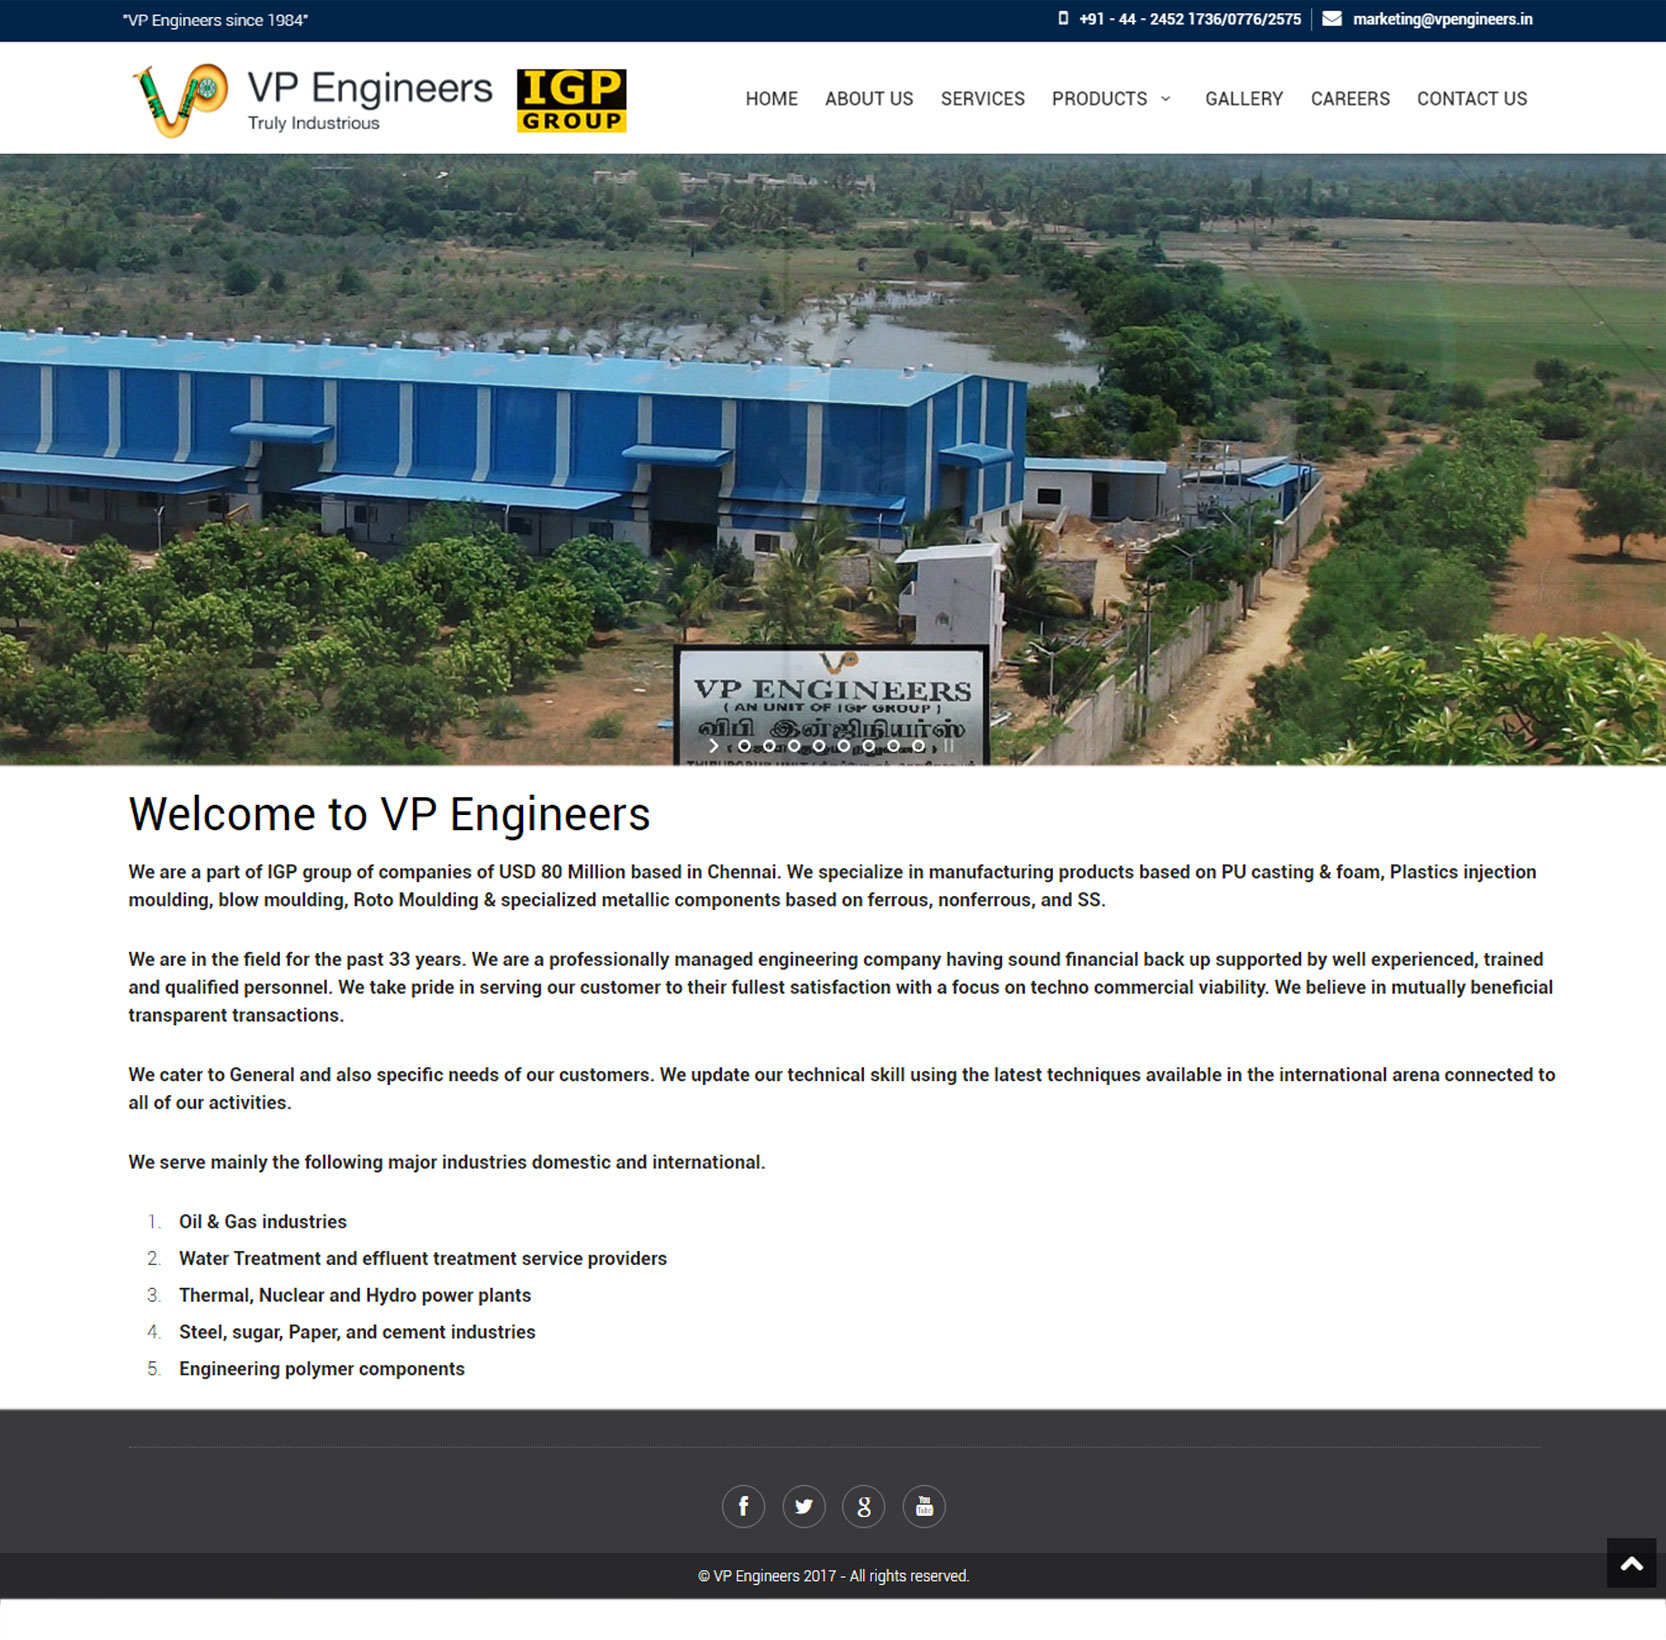 vpengineer